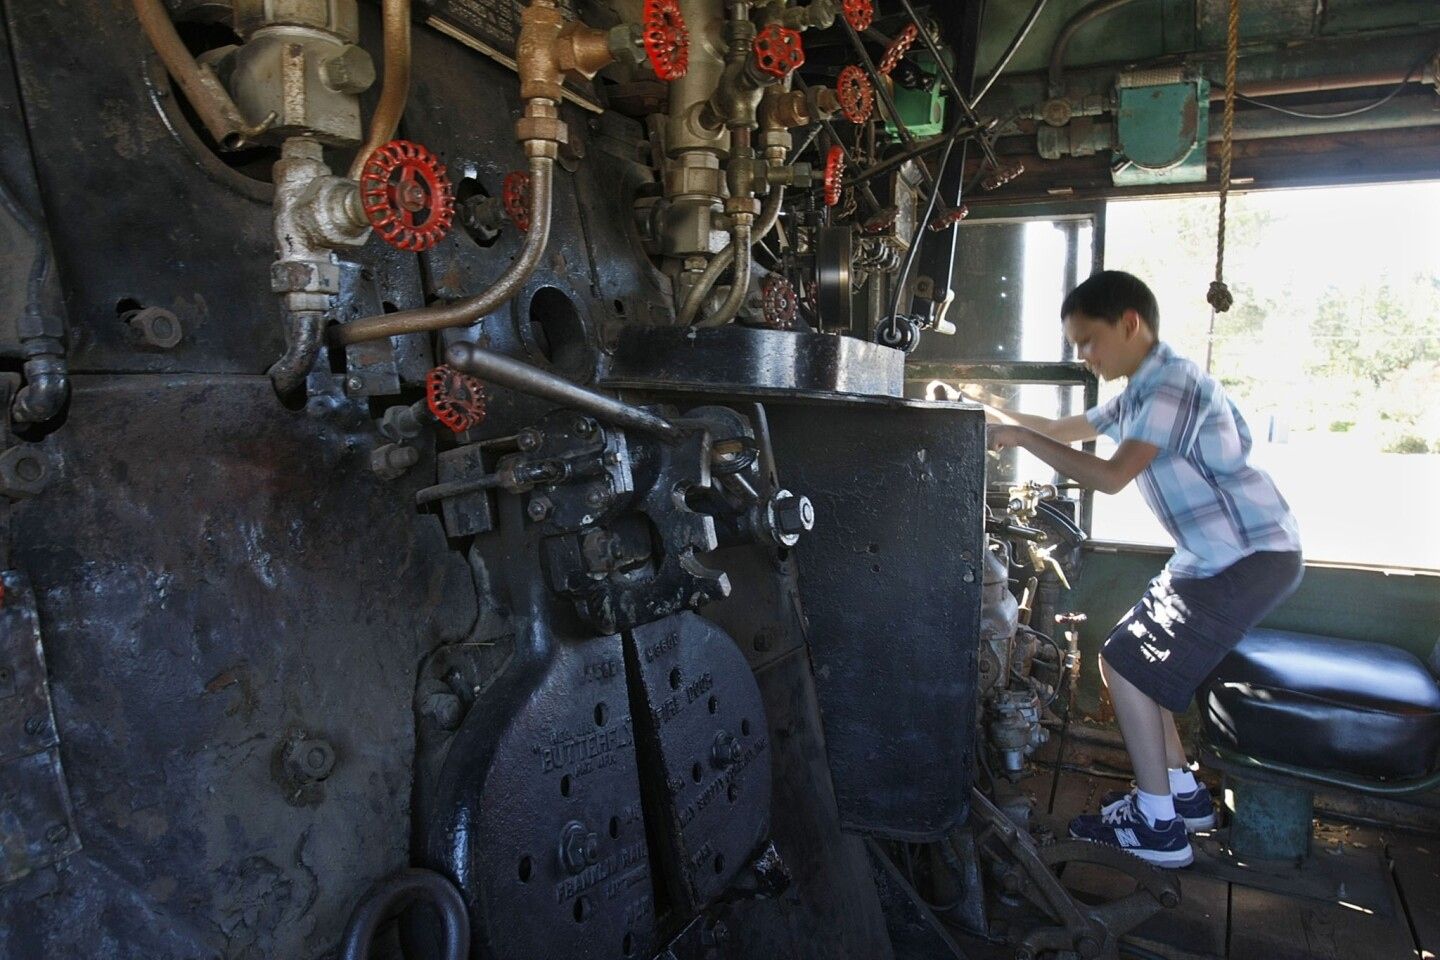 Benjamin Garza, 9, of Calabasas sits inside the cab of Union Pacific's No. 4014. The train is being converted from burning coal to using fuel oil and is being restored as a traveling museum.